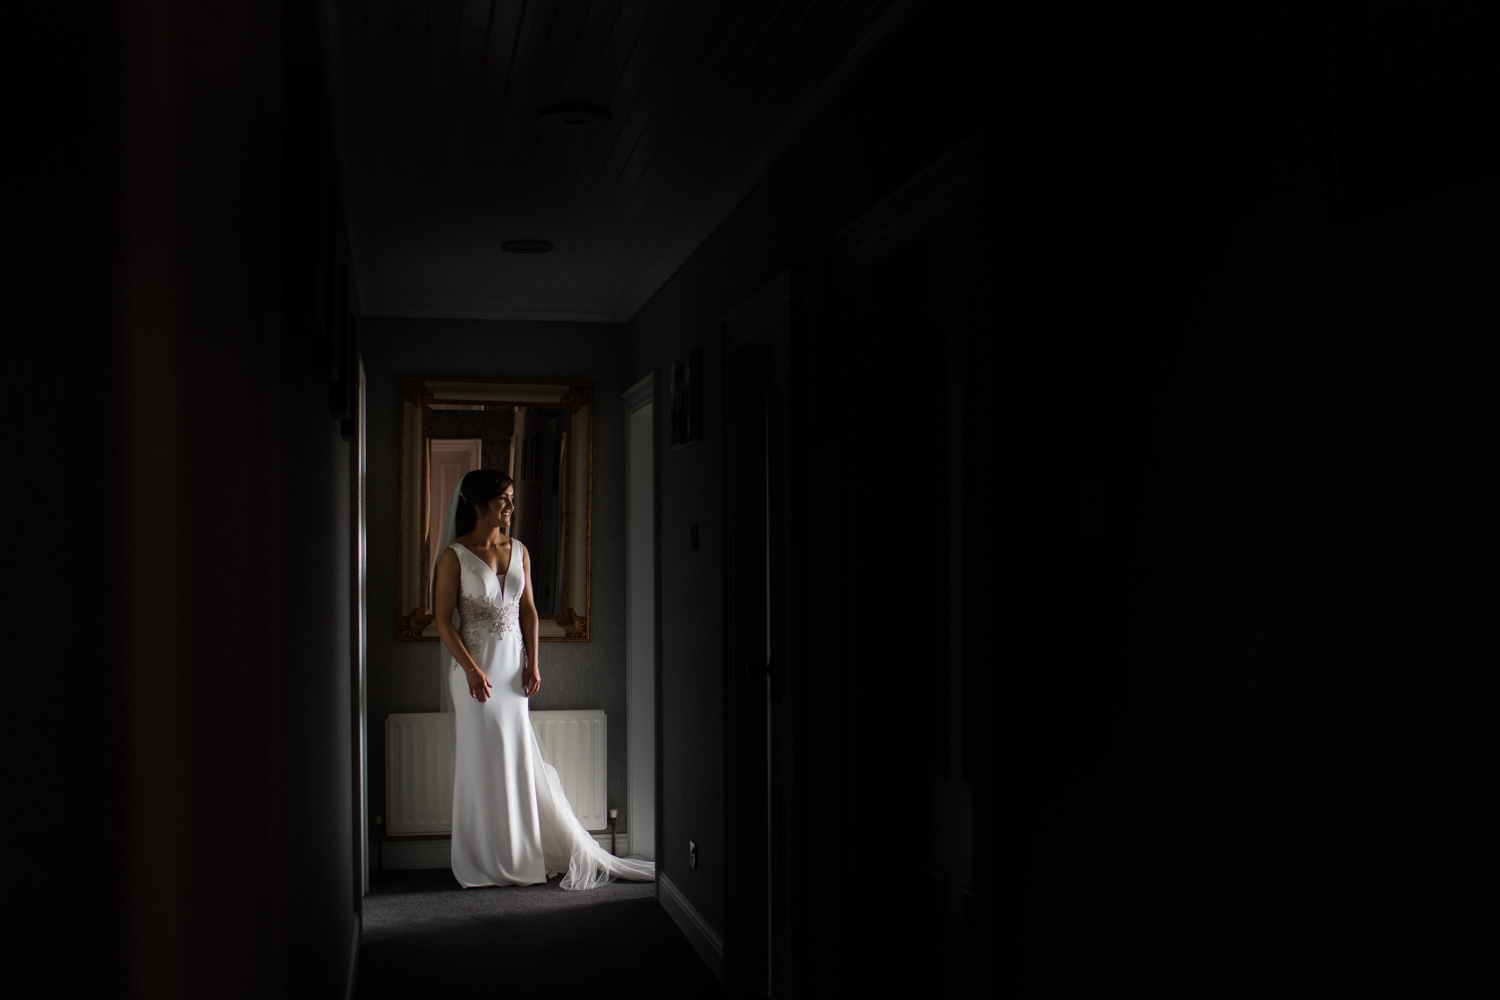 Mark_Barnes_Northern_Ireland_wedding_photographer_redcastle_hotel_Donegal_Wedding_photography_Donegal_wedding_photographer-10.jpg